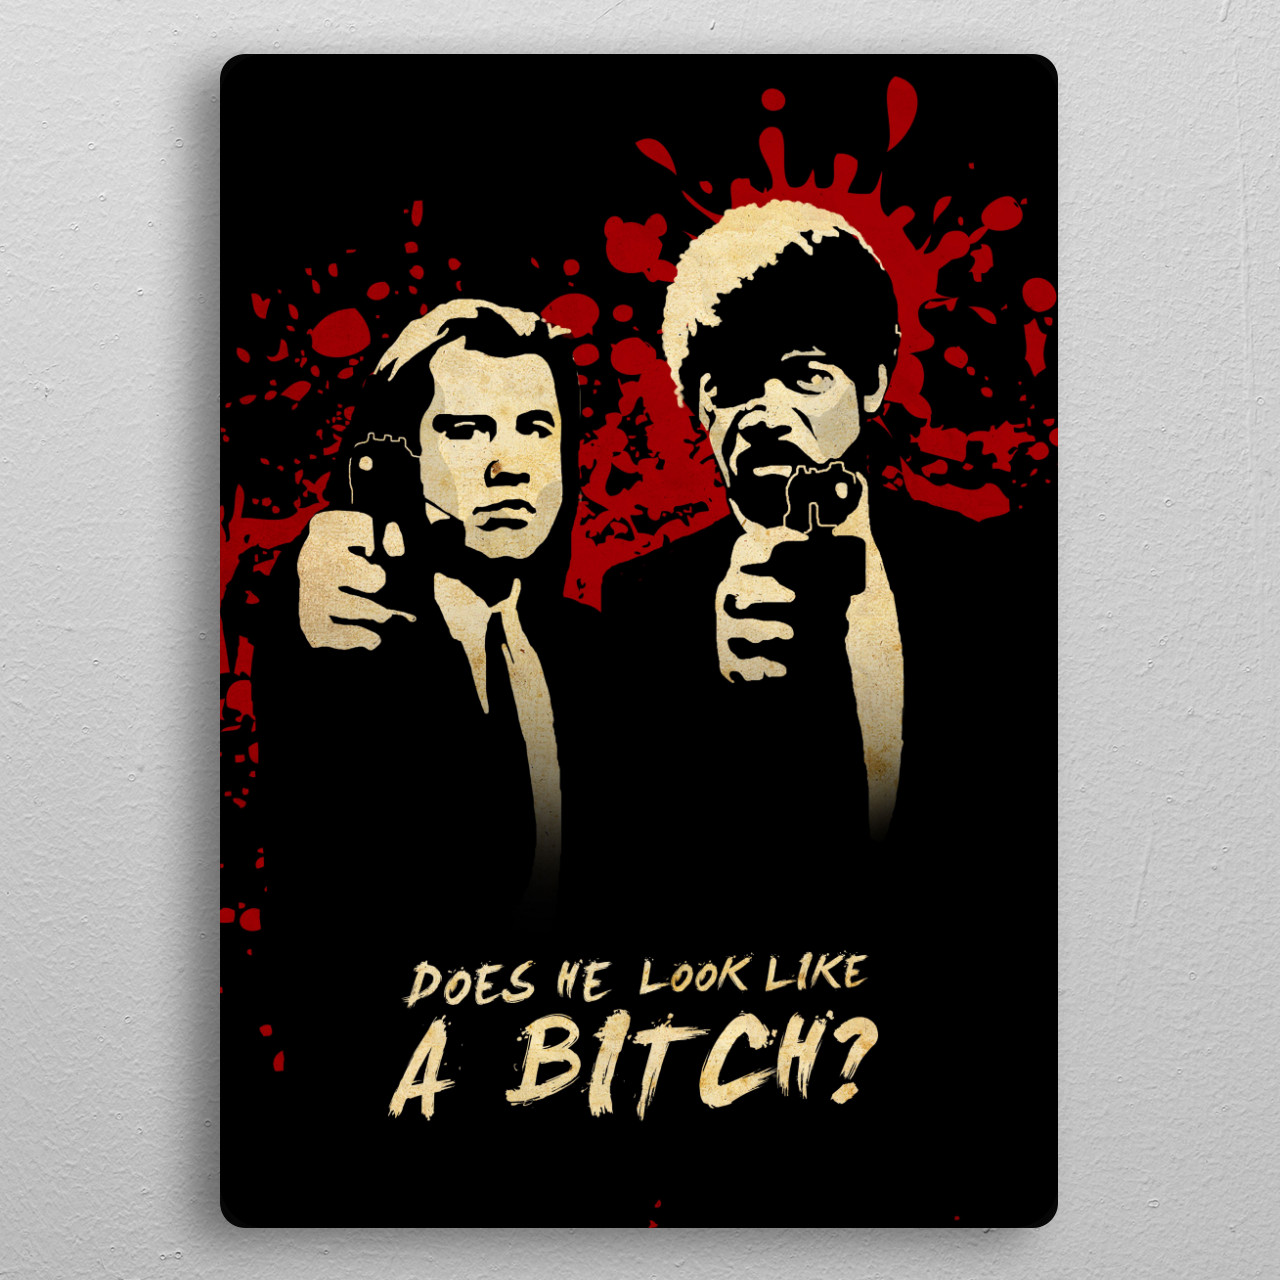 Does he look like a Bitch? pocket-size metal print from Black box